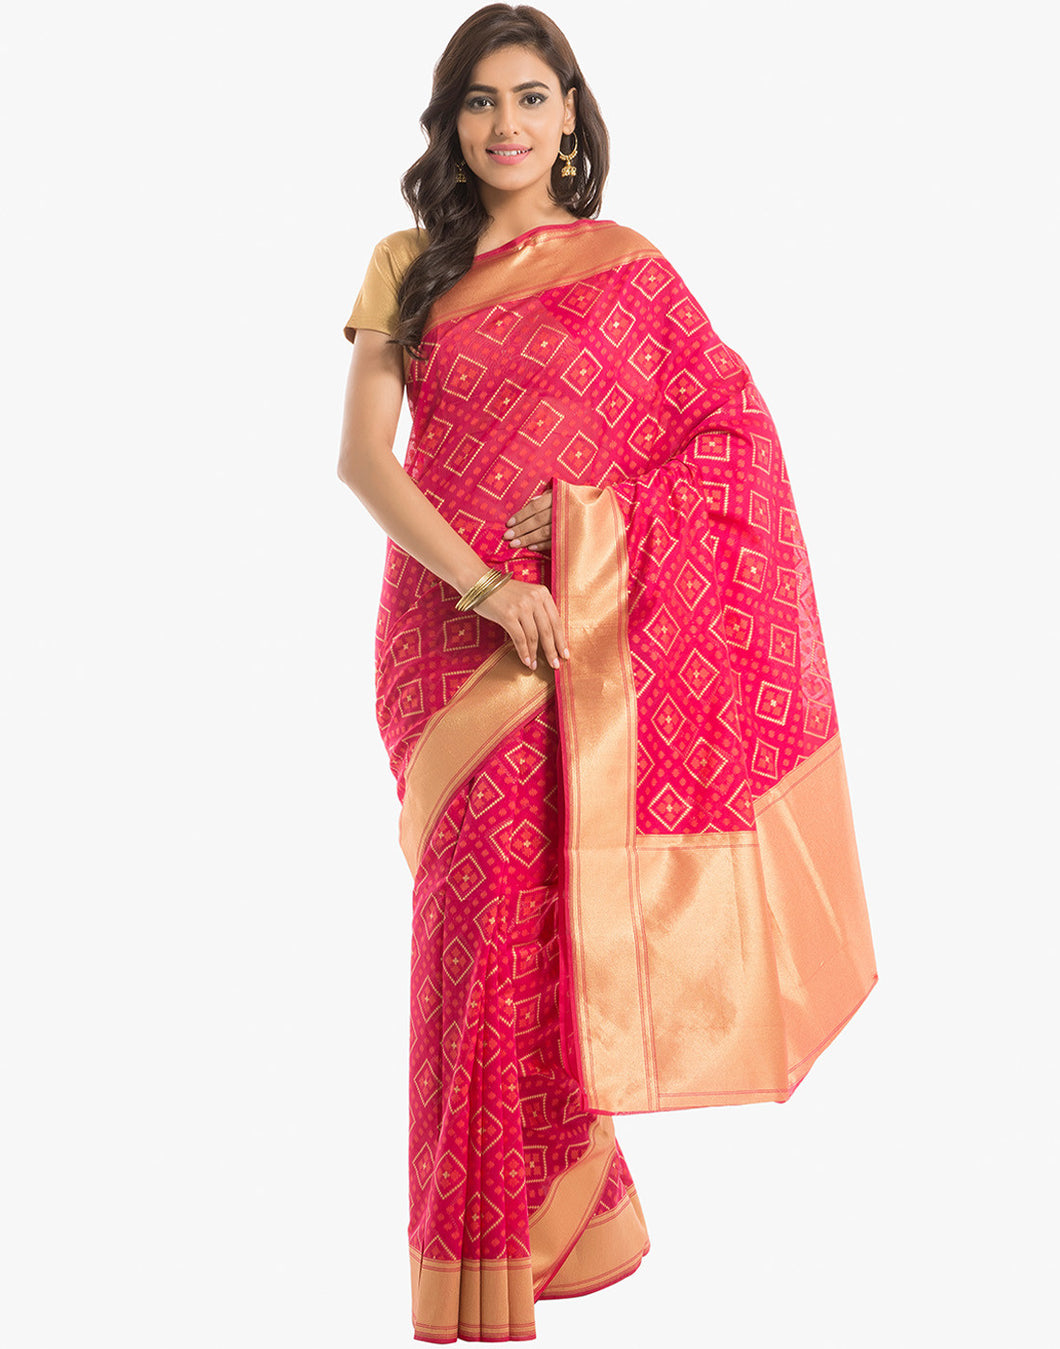 Cotton Saree With Geomerical Weave Pattern By Meena Bazaar